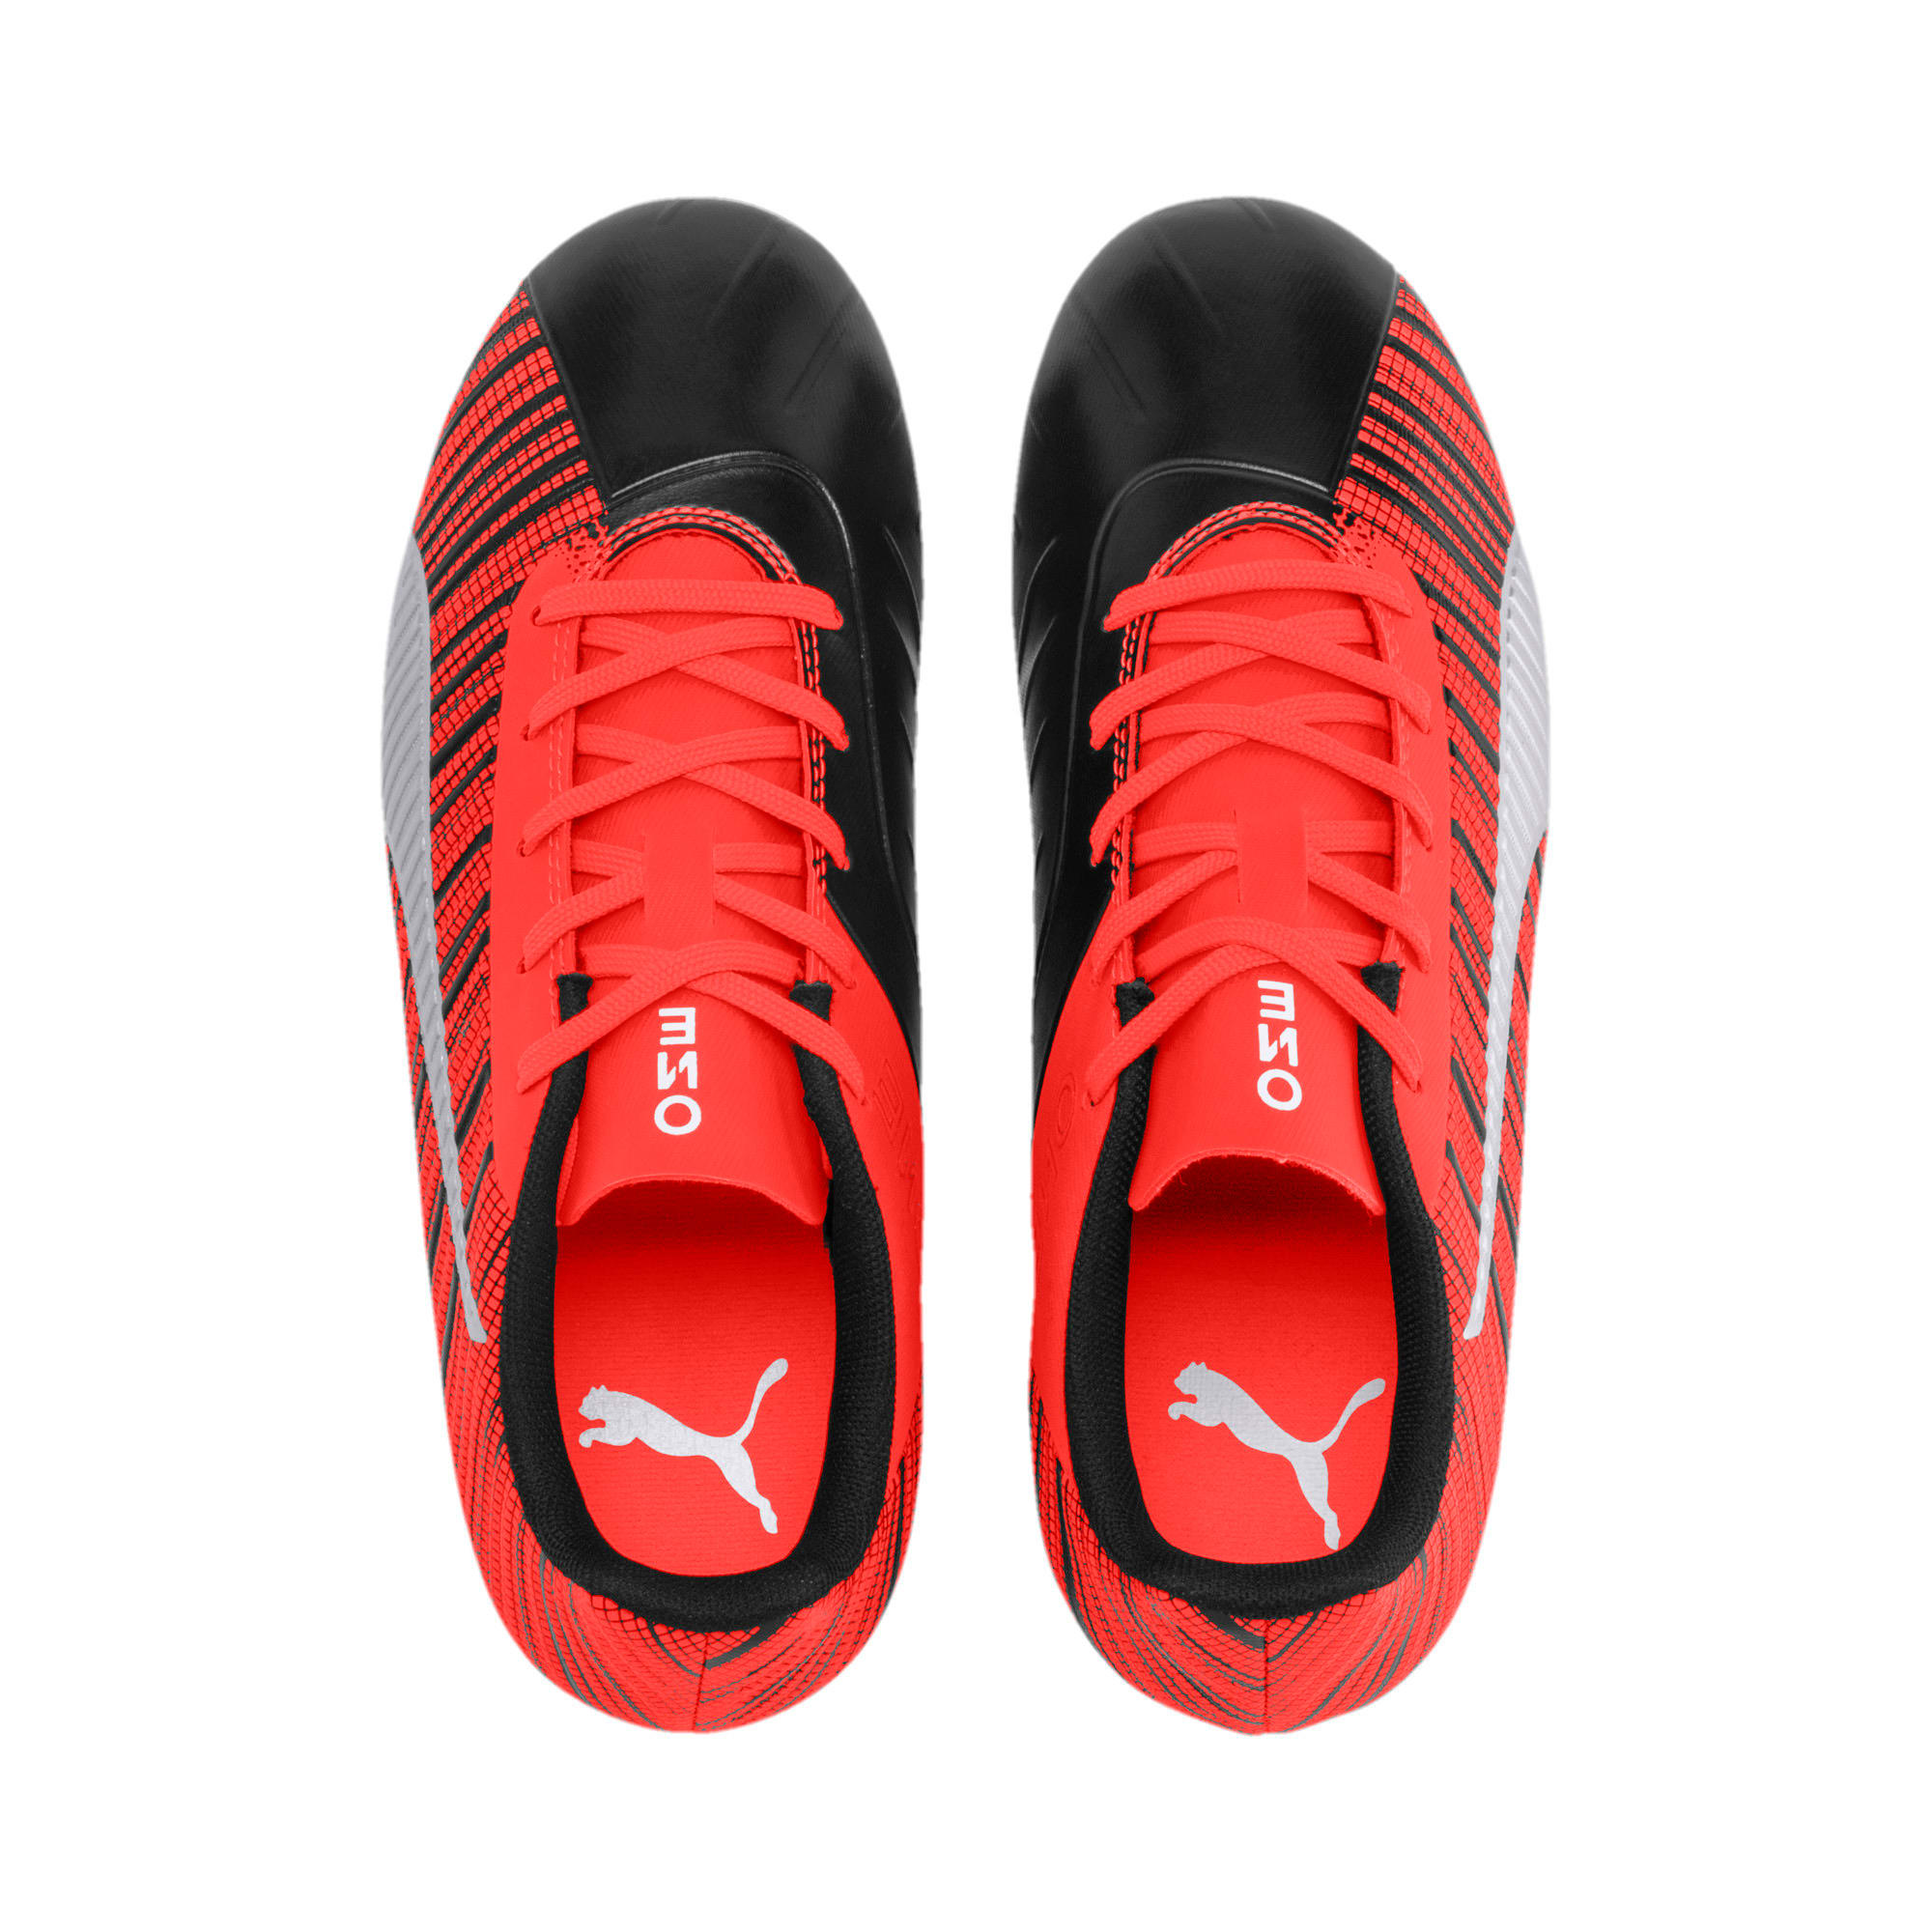 Thumbnail 6 of PUMA ONE 5.4 IT Youth Football Boots, Black-Nrgy Red-Aged Silver, medium